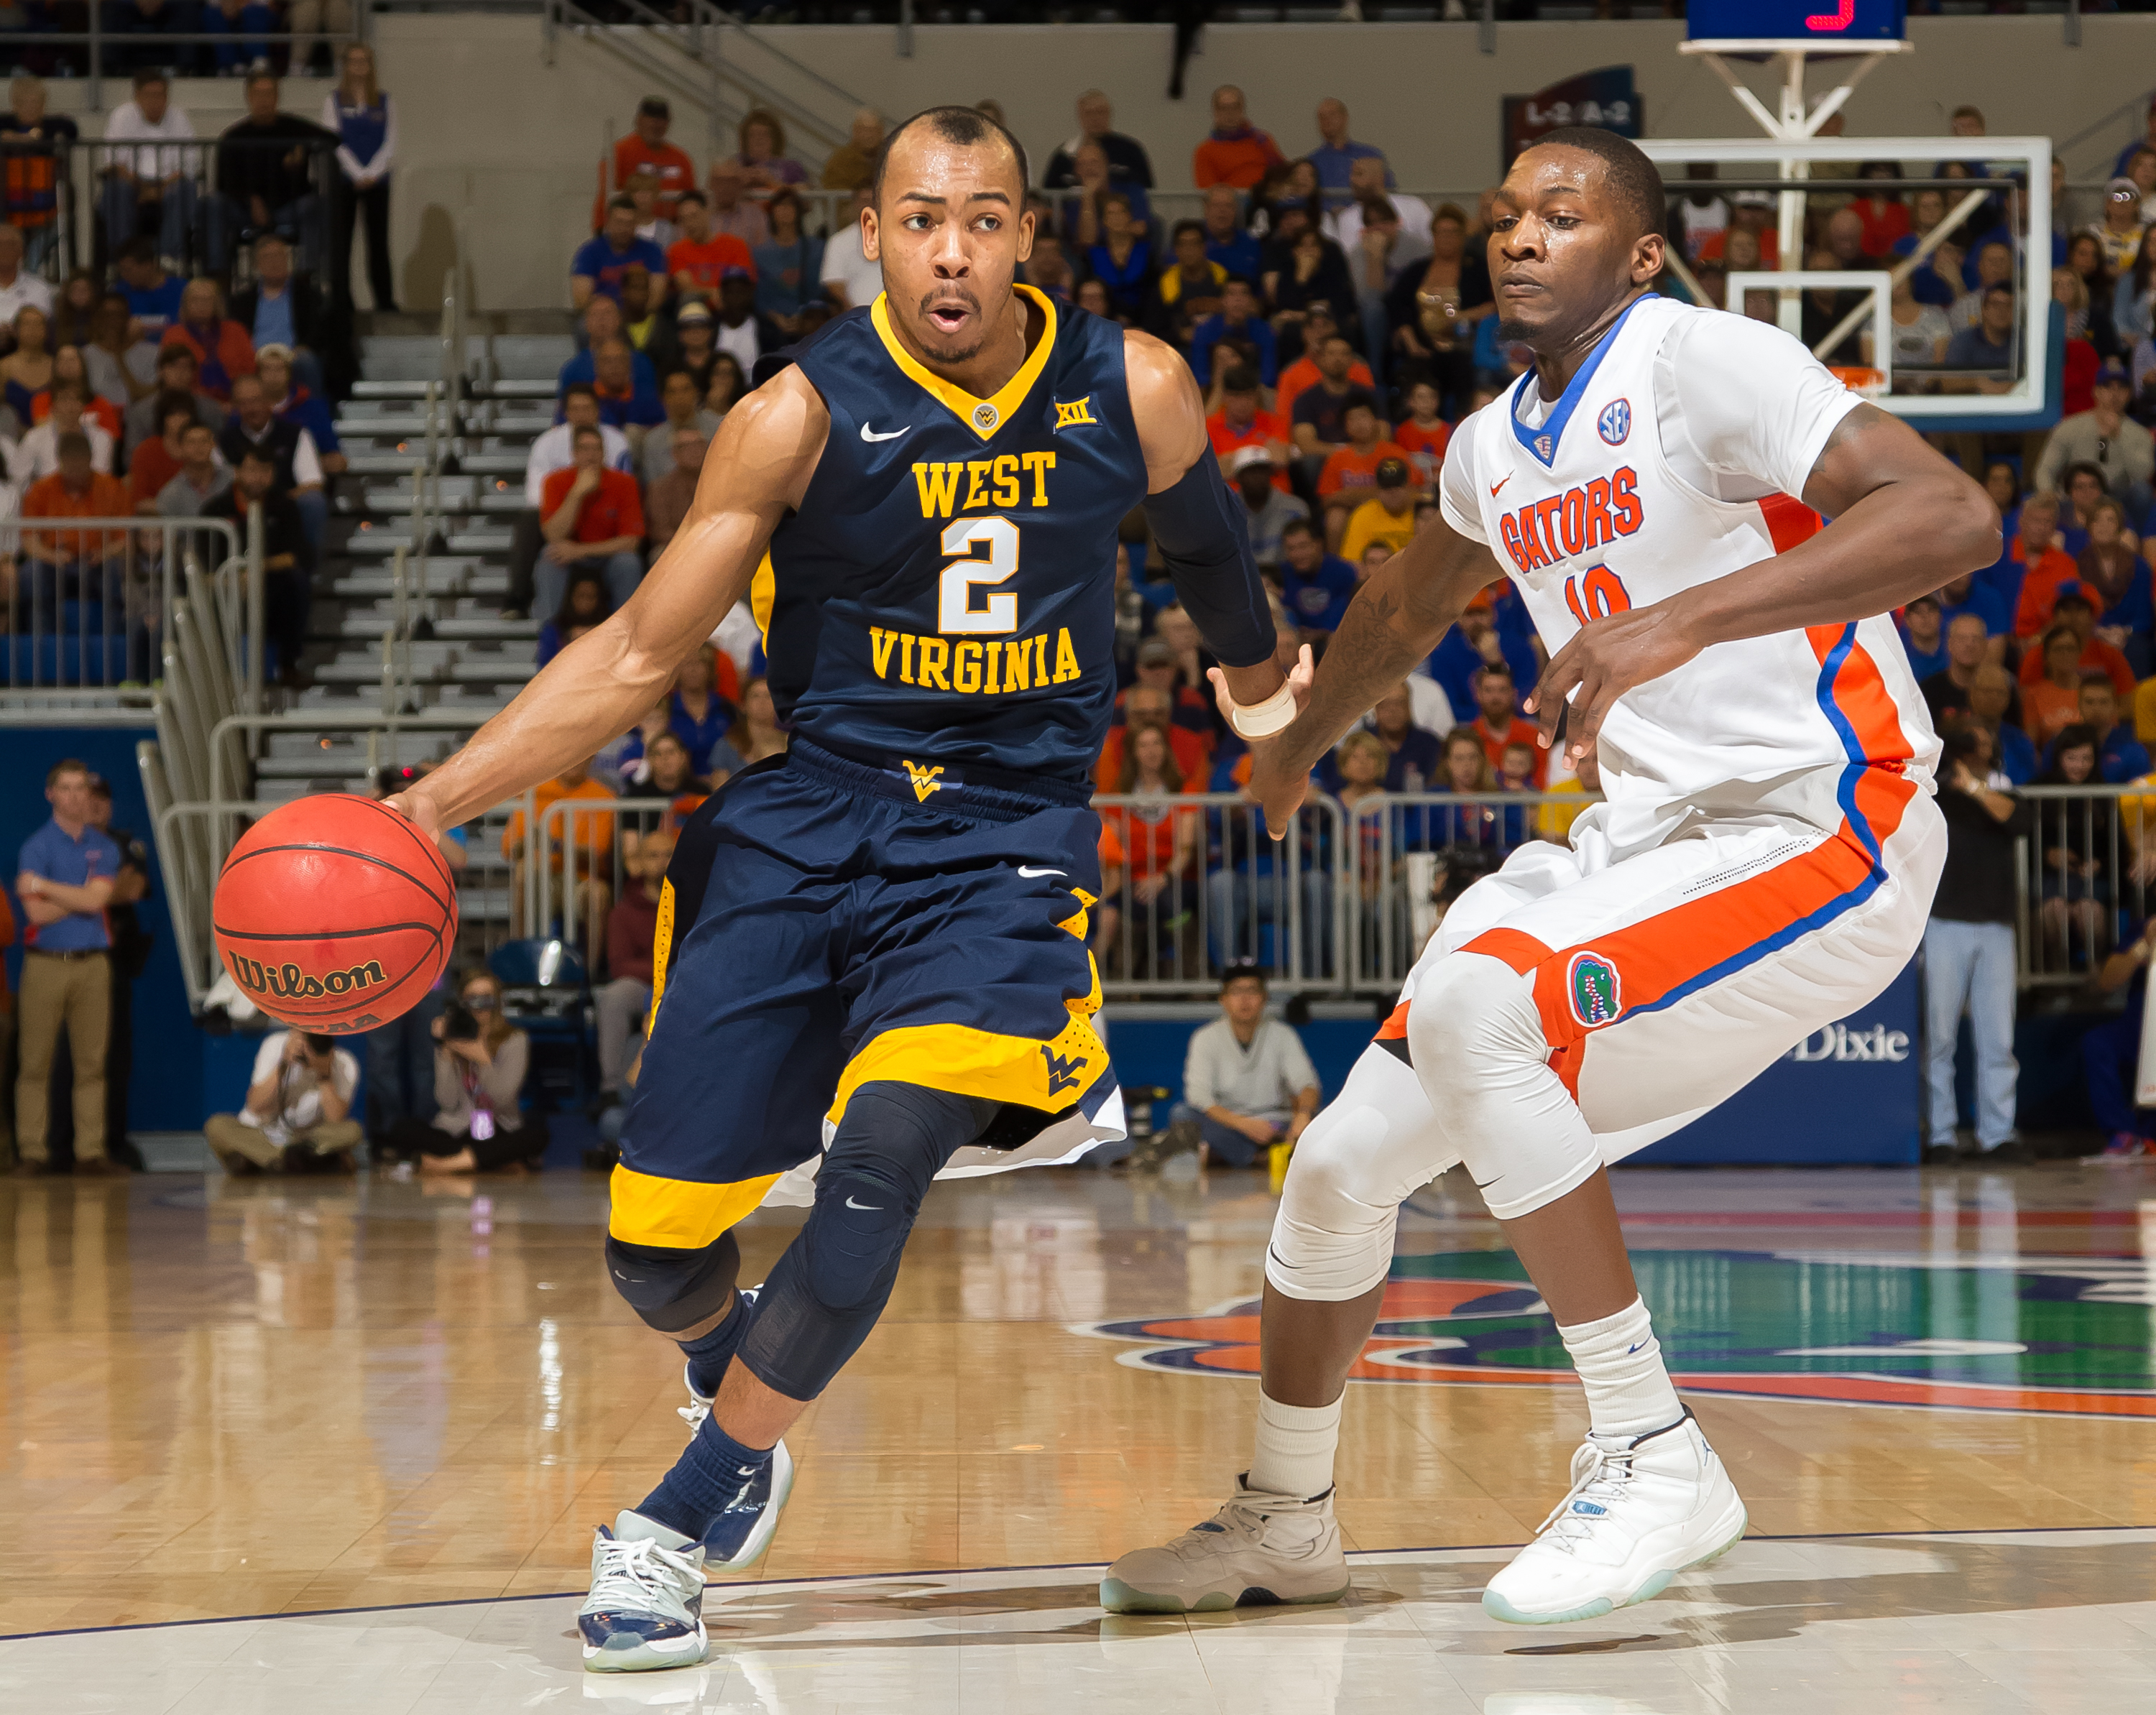 West Virginia guard Jevon Carter (2) dribbles past Florida forward Dorian Finney-Smith (10) during the first half of an NCAA college basketball game, Saturday, Jan. 30, 2016, in Gainesville, Fla. (AP Photo/Ronald Irby)